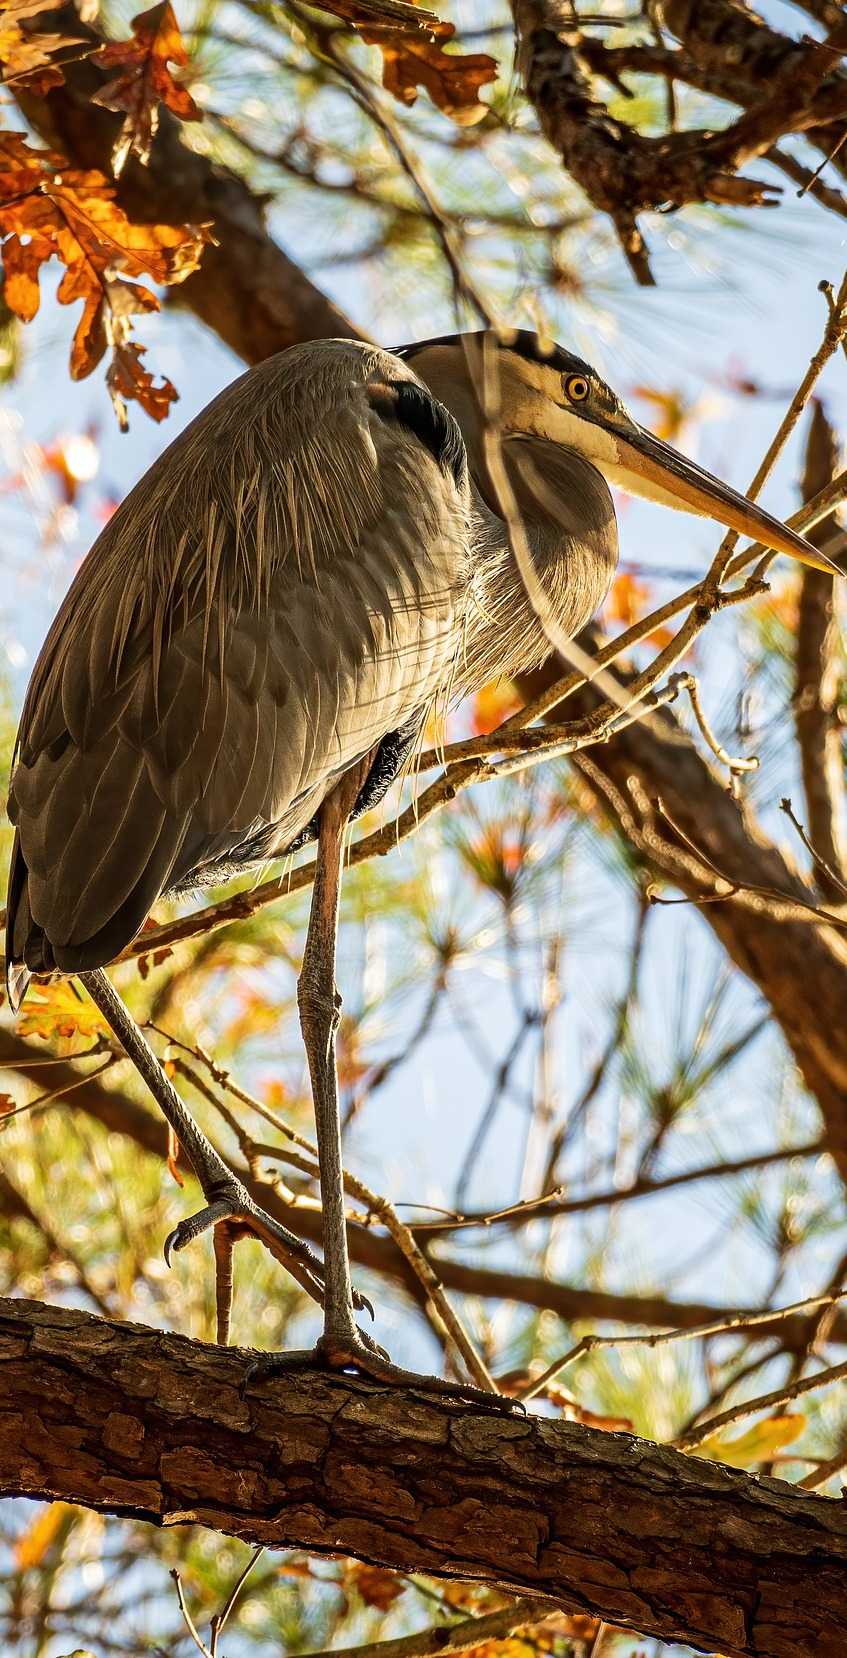 Heron on a tree branch.